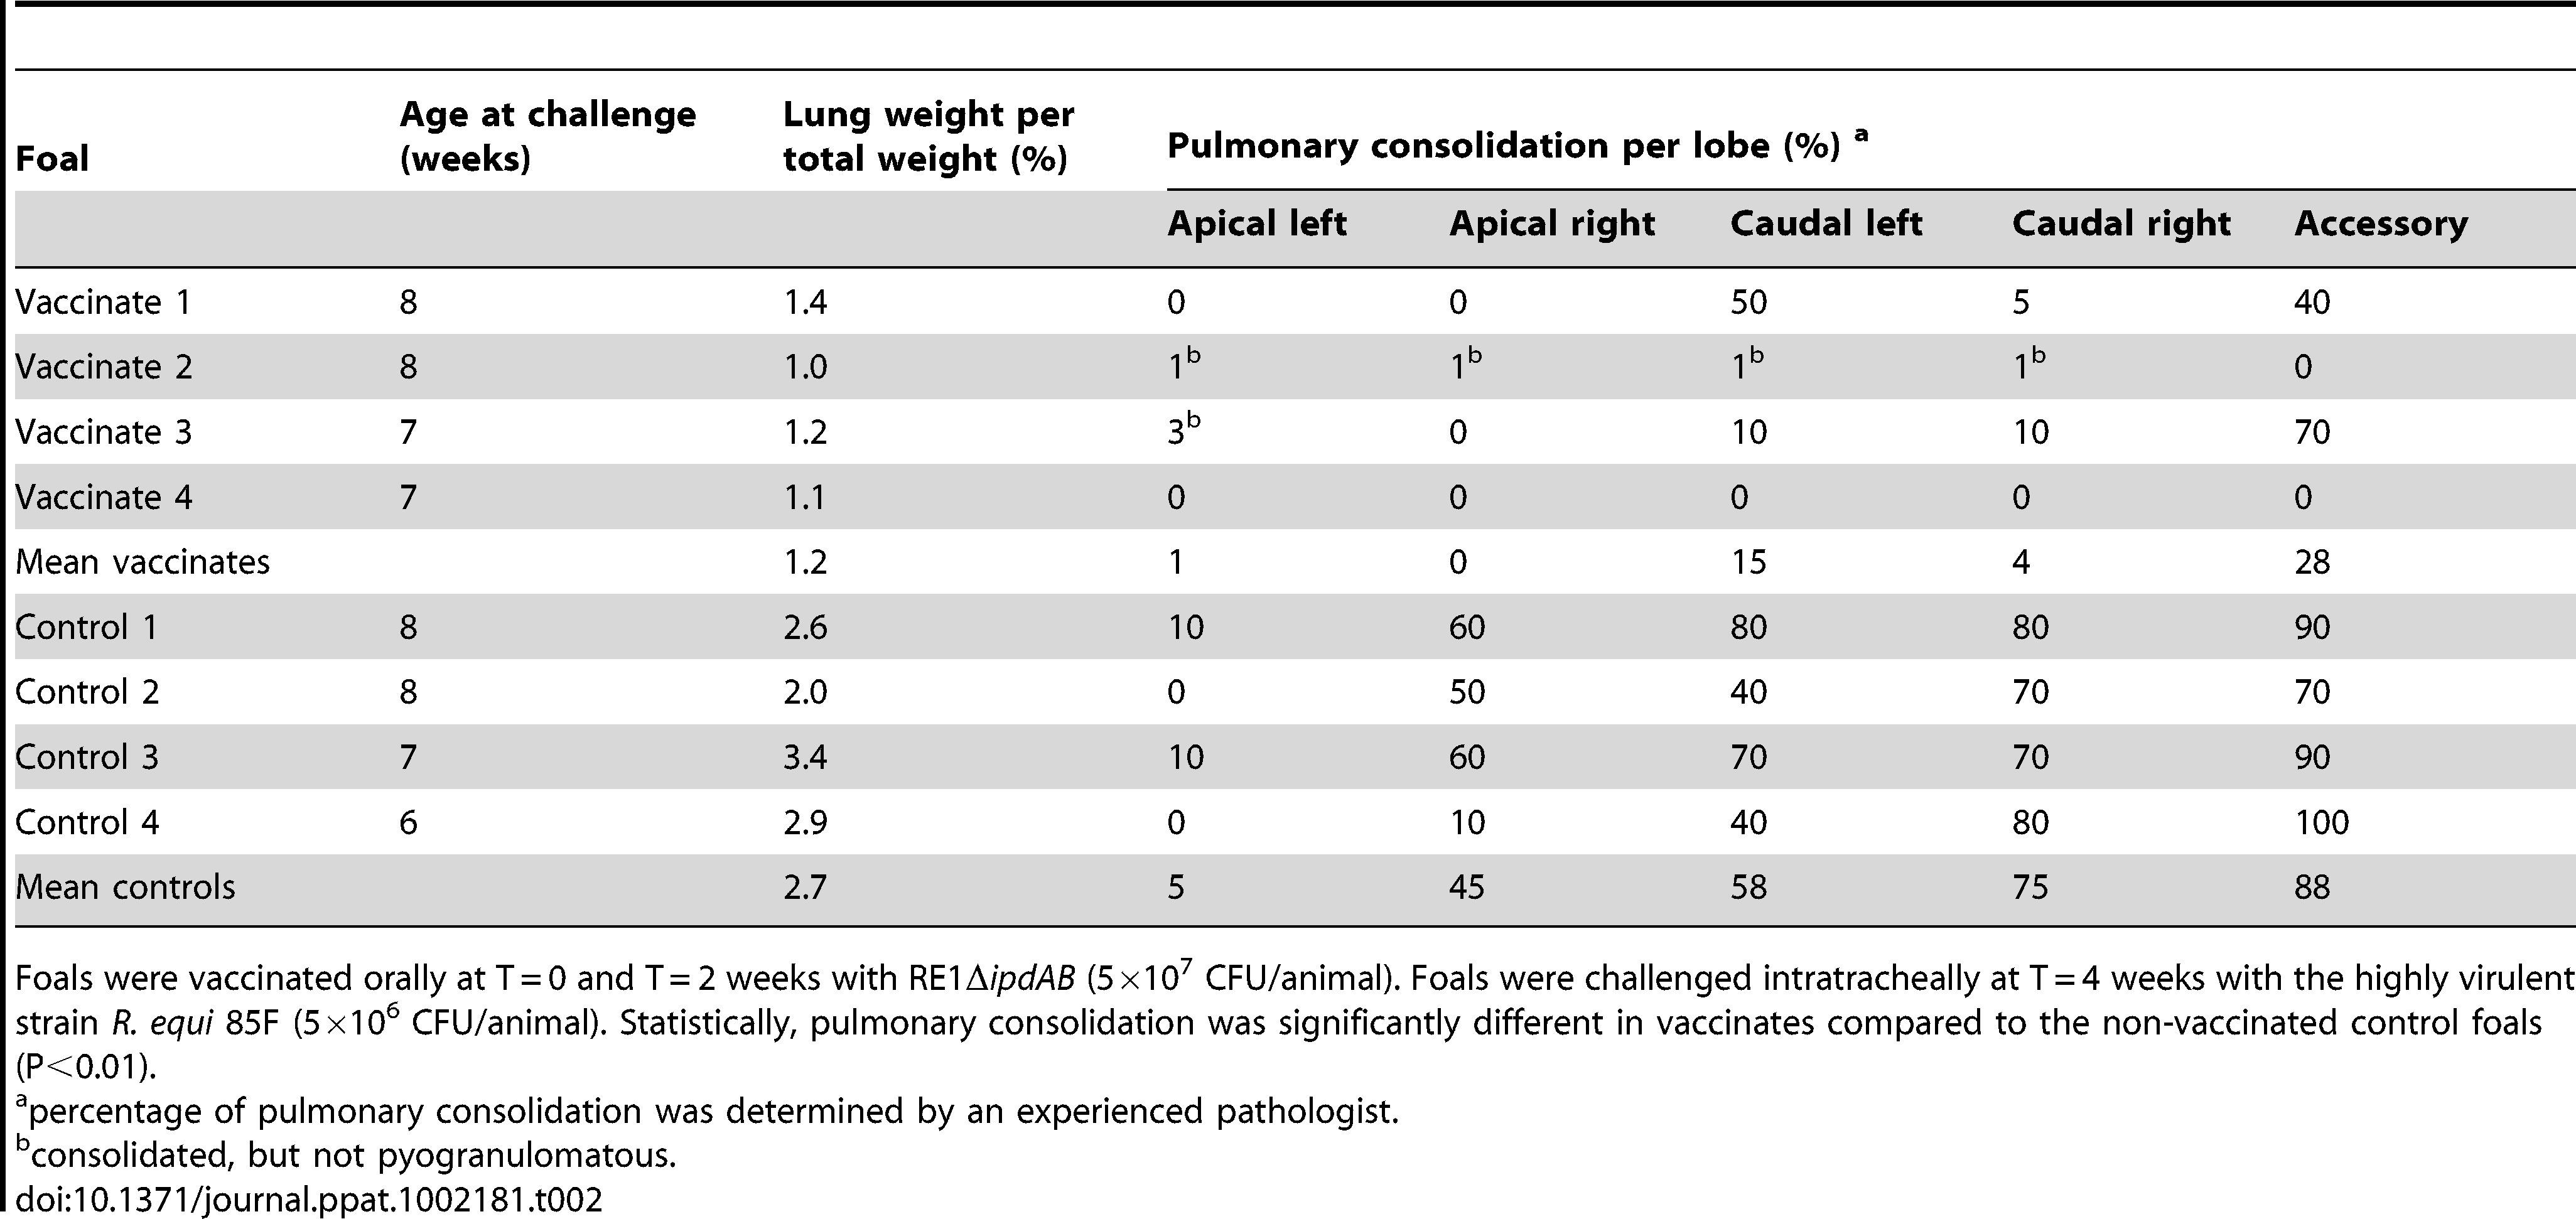 Lung weights and percentage pulmonary consolidation per lobe of vaccinated and unvaccinated (control) 2 to 4-week-old foals (n=4).